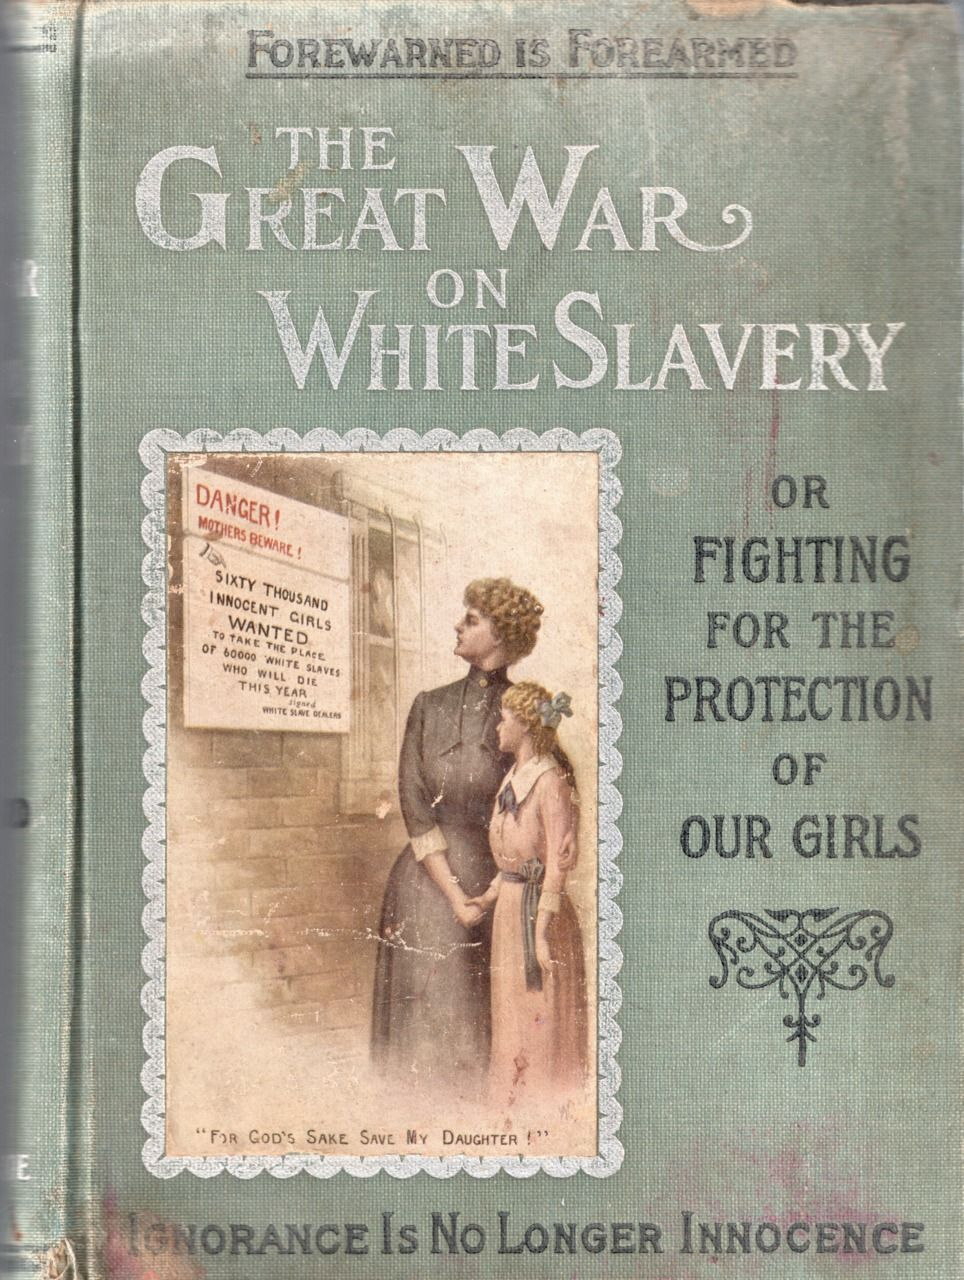 The Great War on White Slavery, by Clifford G. Roe, 1911.